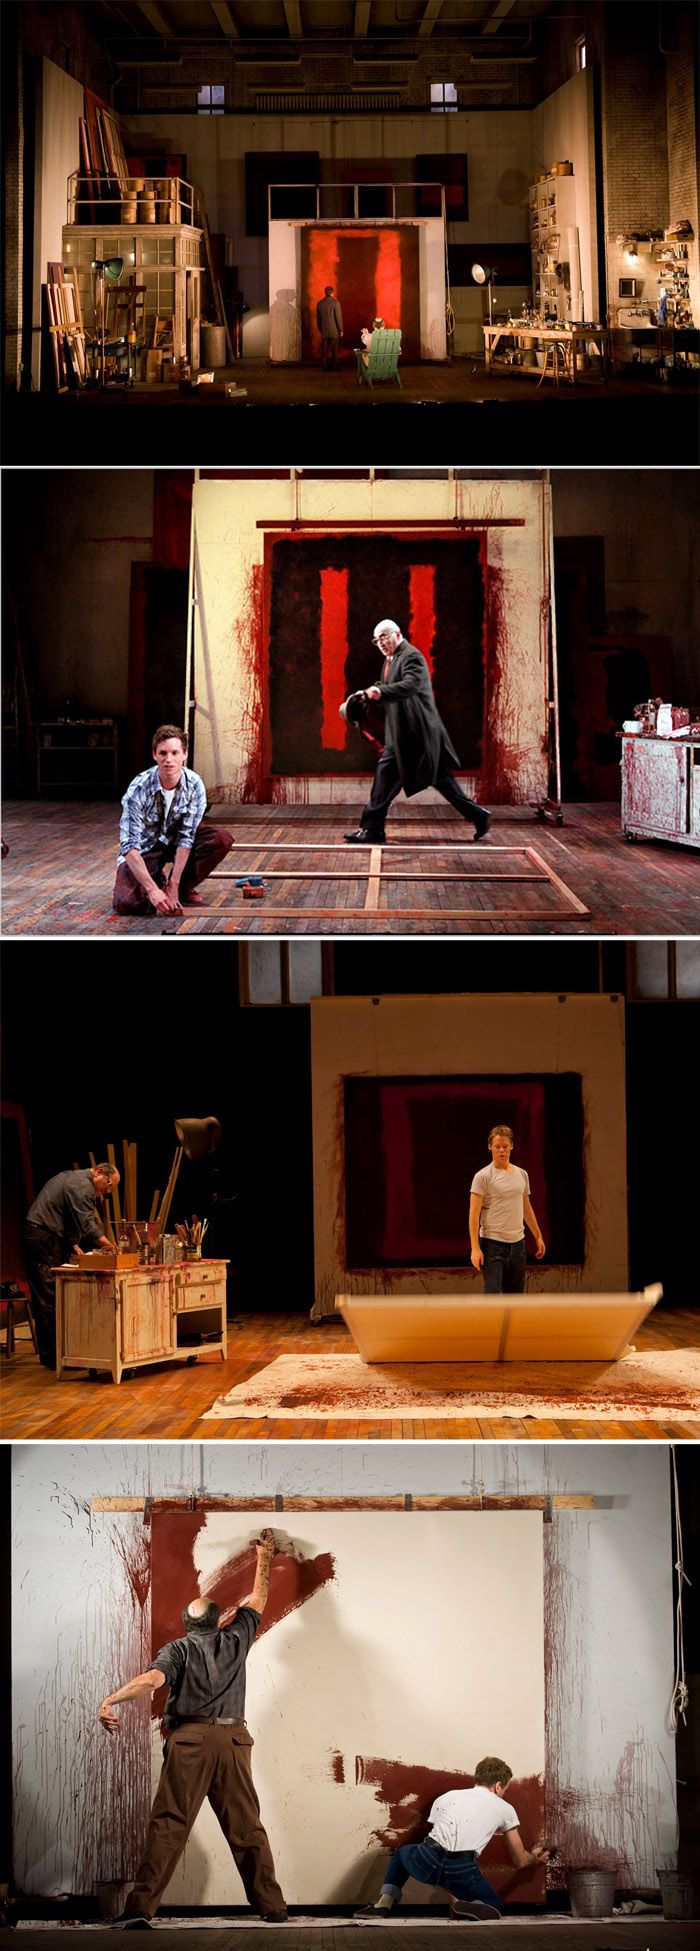 """Red is a play by American writer John Logan about artist Mark Rothko....The original production was directed by Michael Grandage and performed by Alfred Molina as Rothko and Eddie Redmayne as his fictional assistant Ken..."